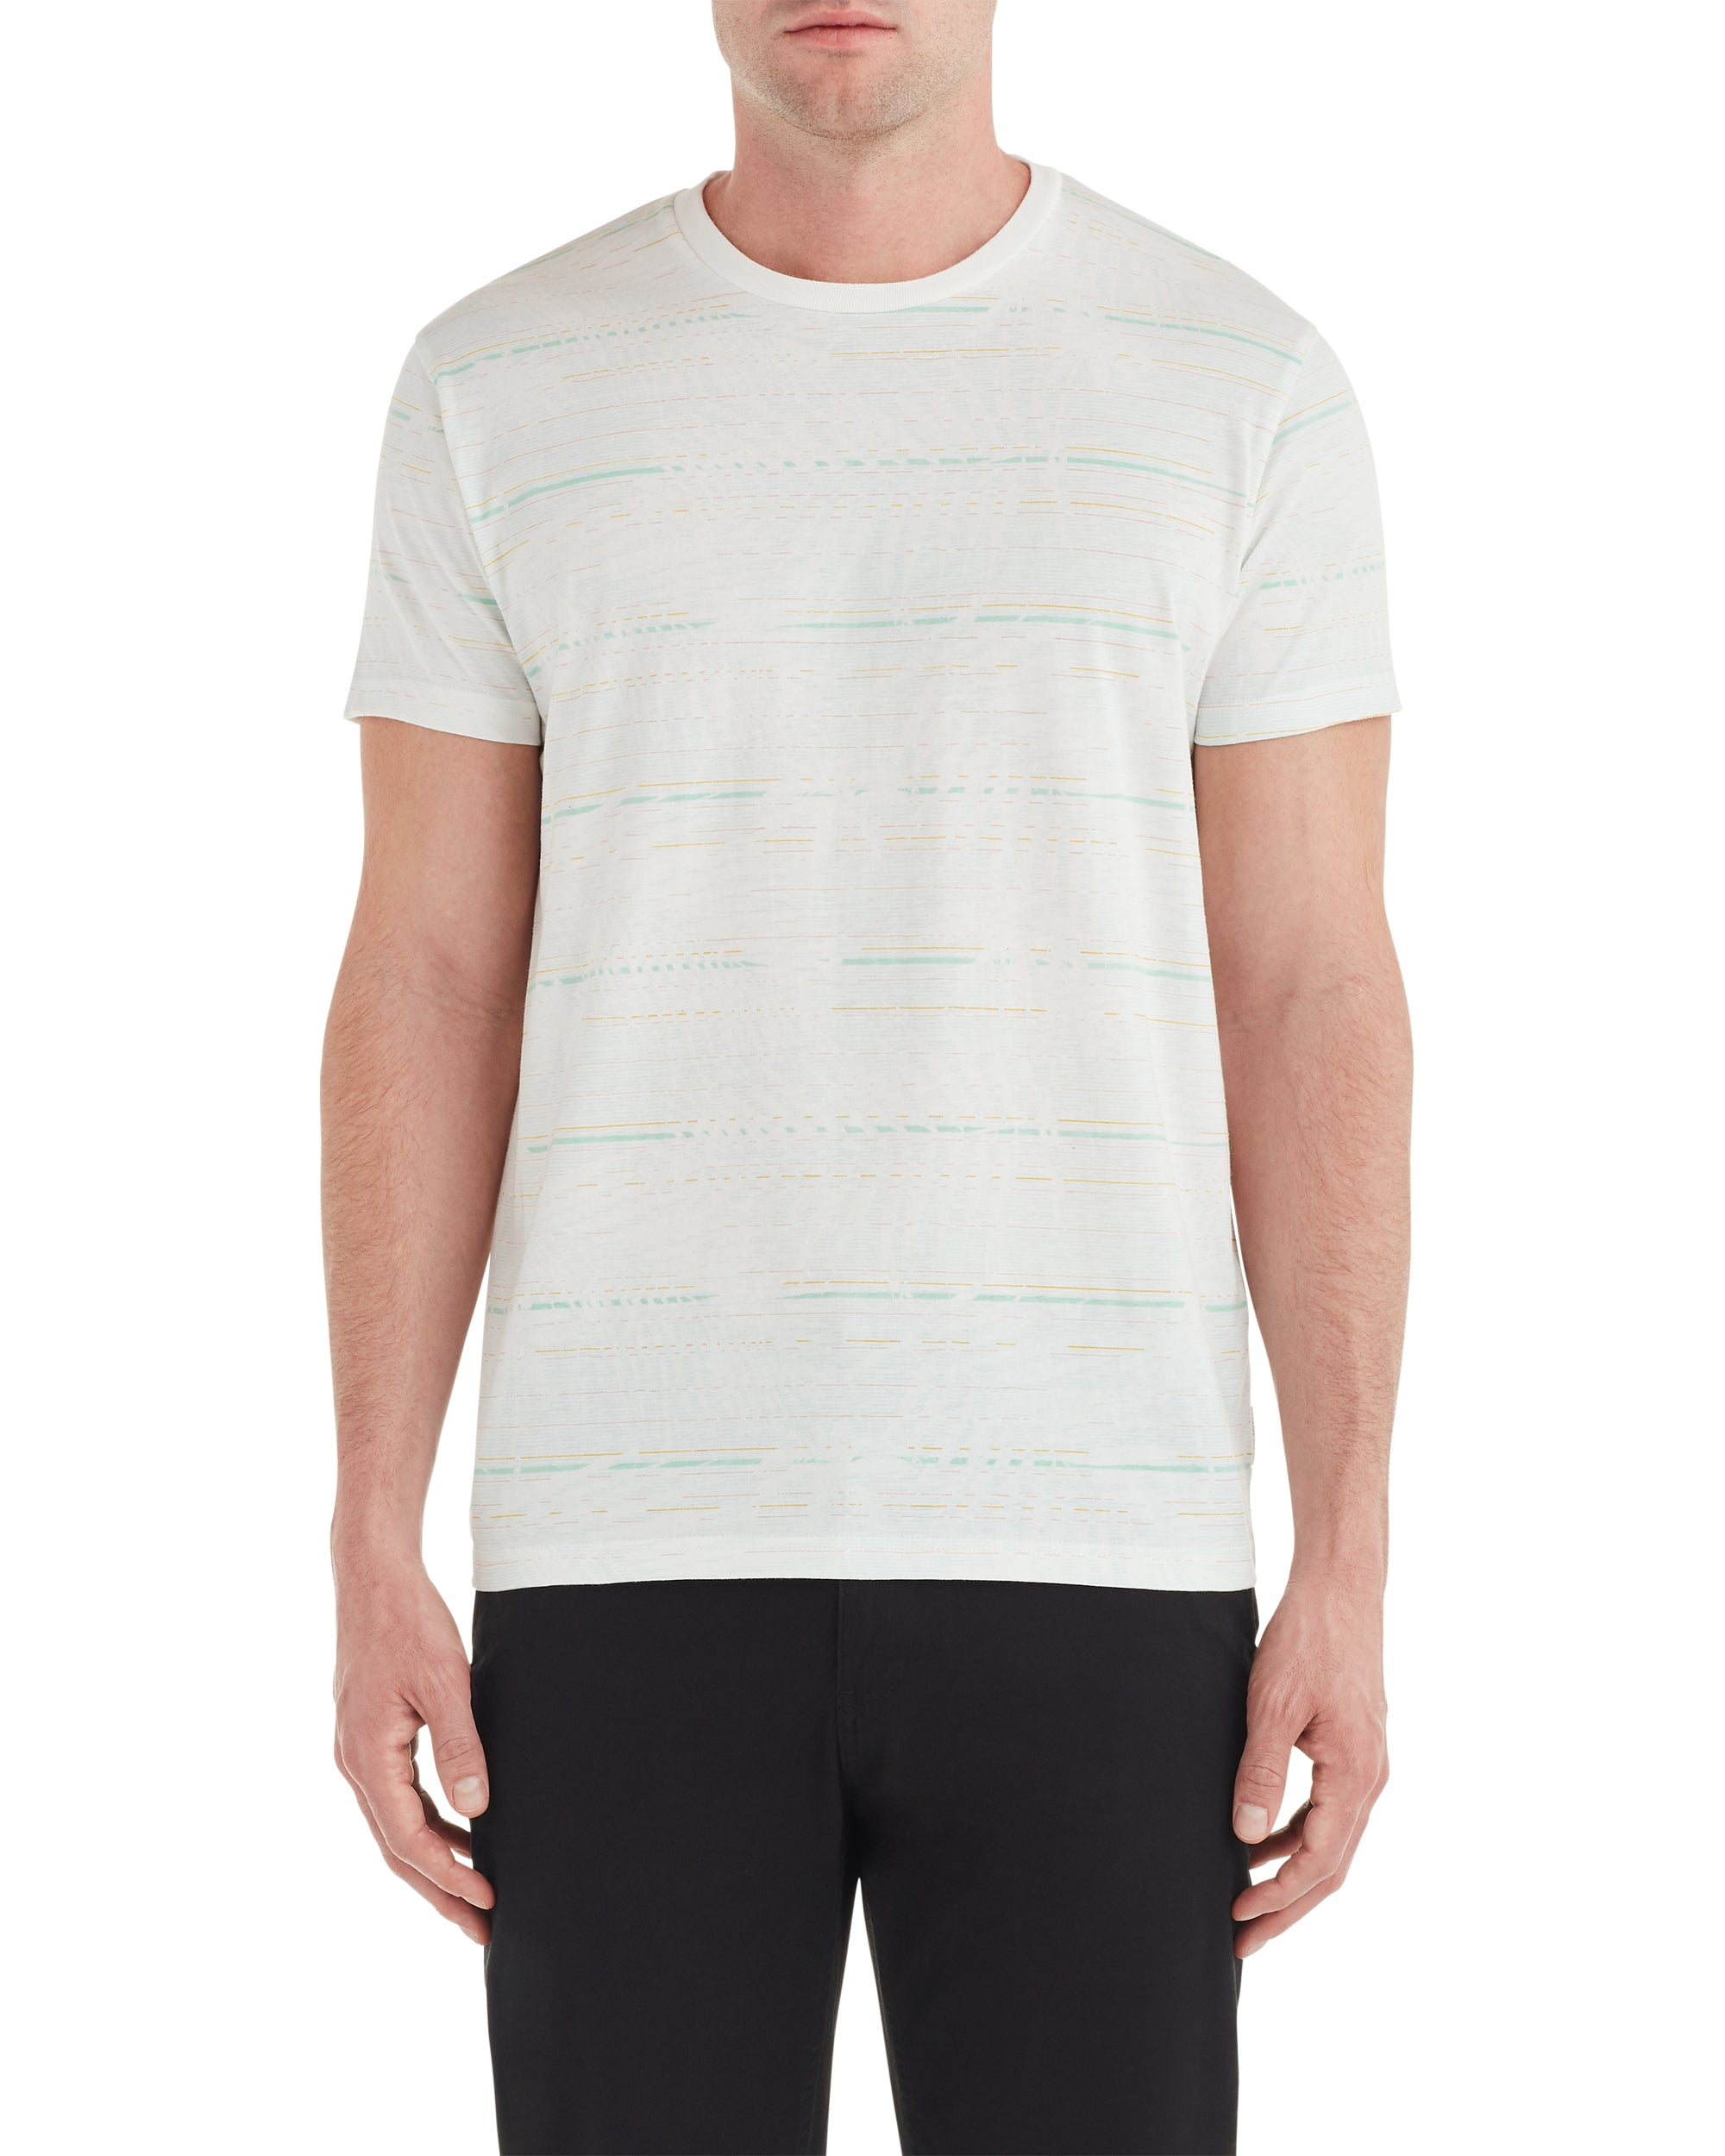 Palm Striped Styled Tee - White